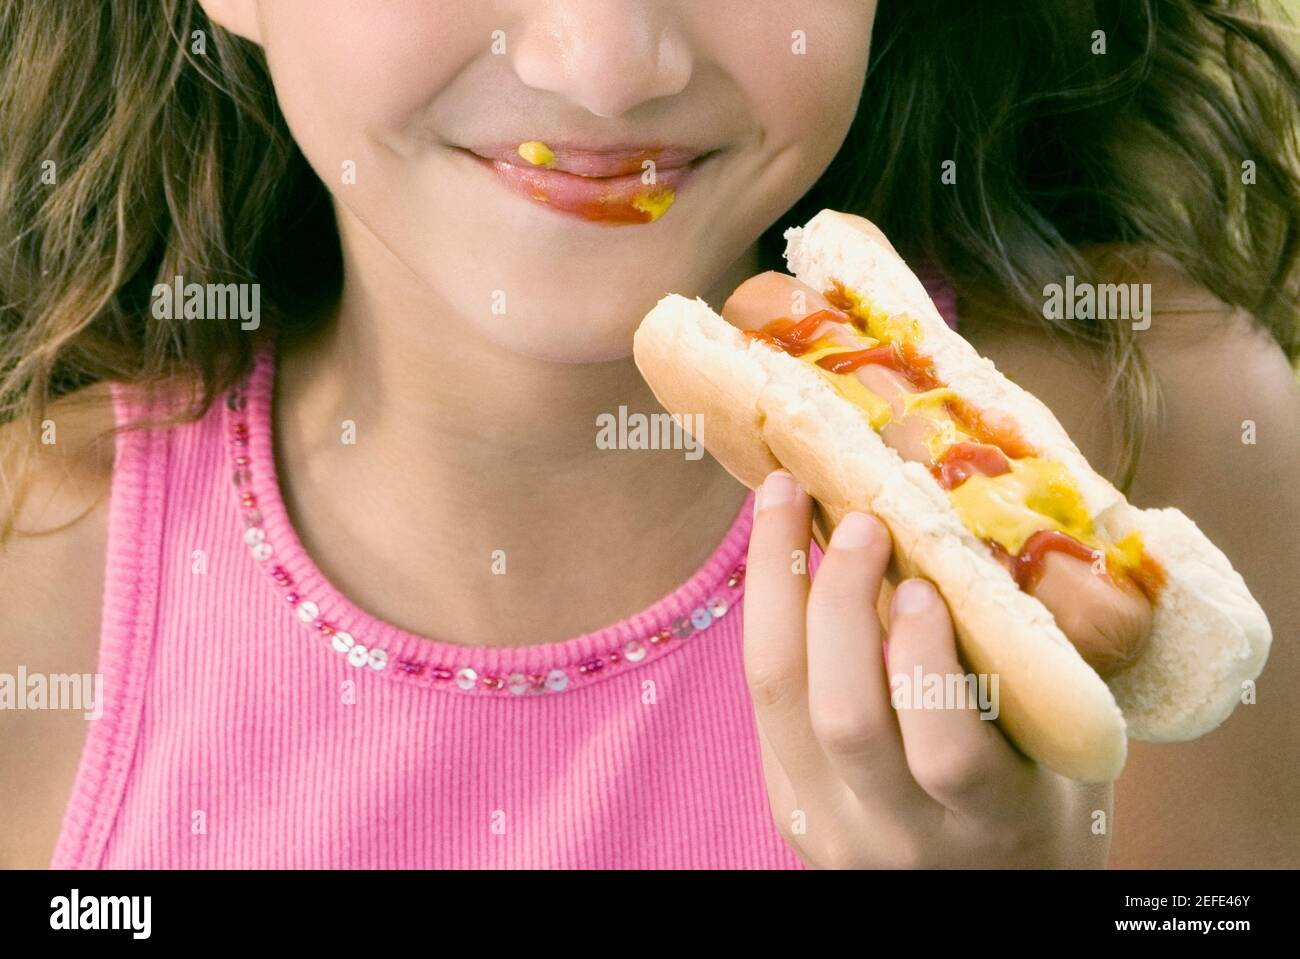 Close-up of a girl eating a hot dog Stock Photo